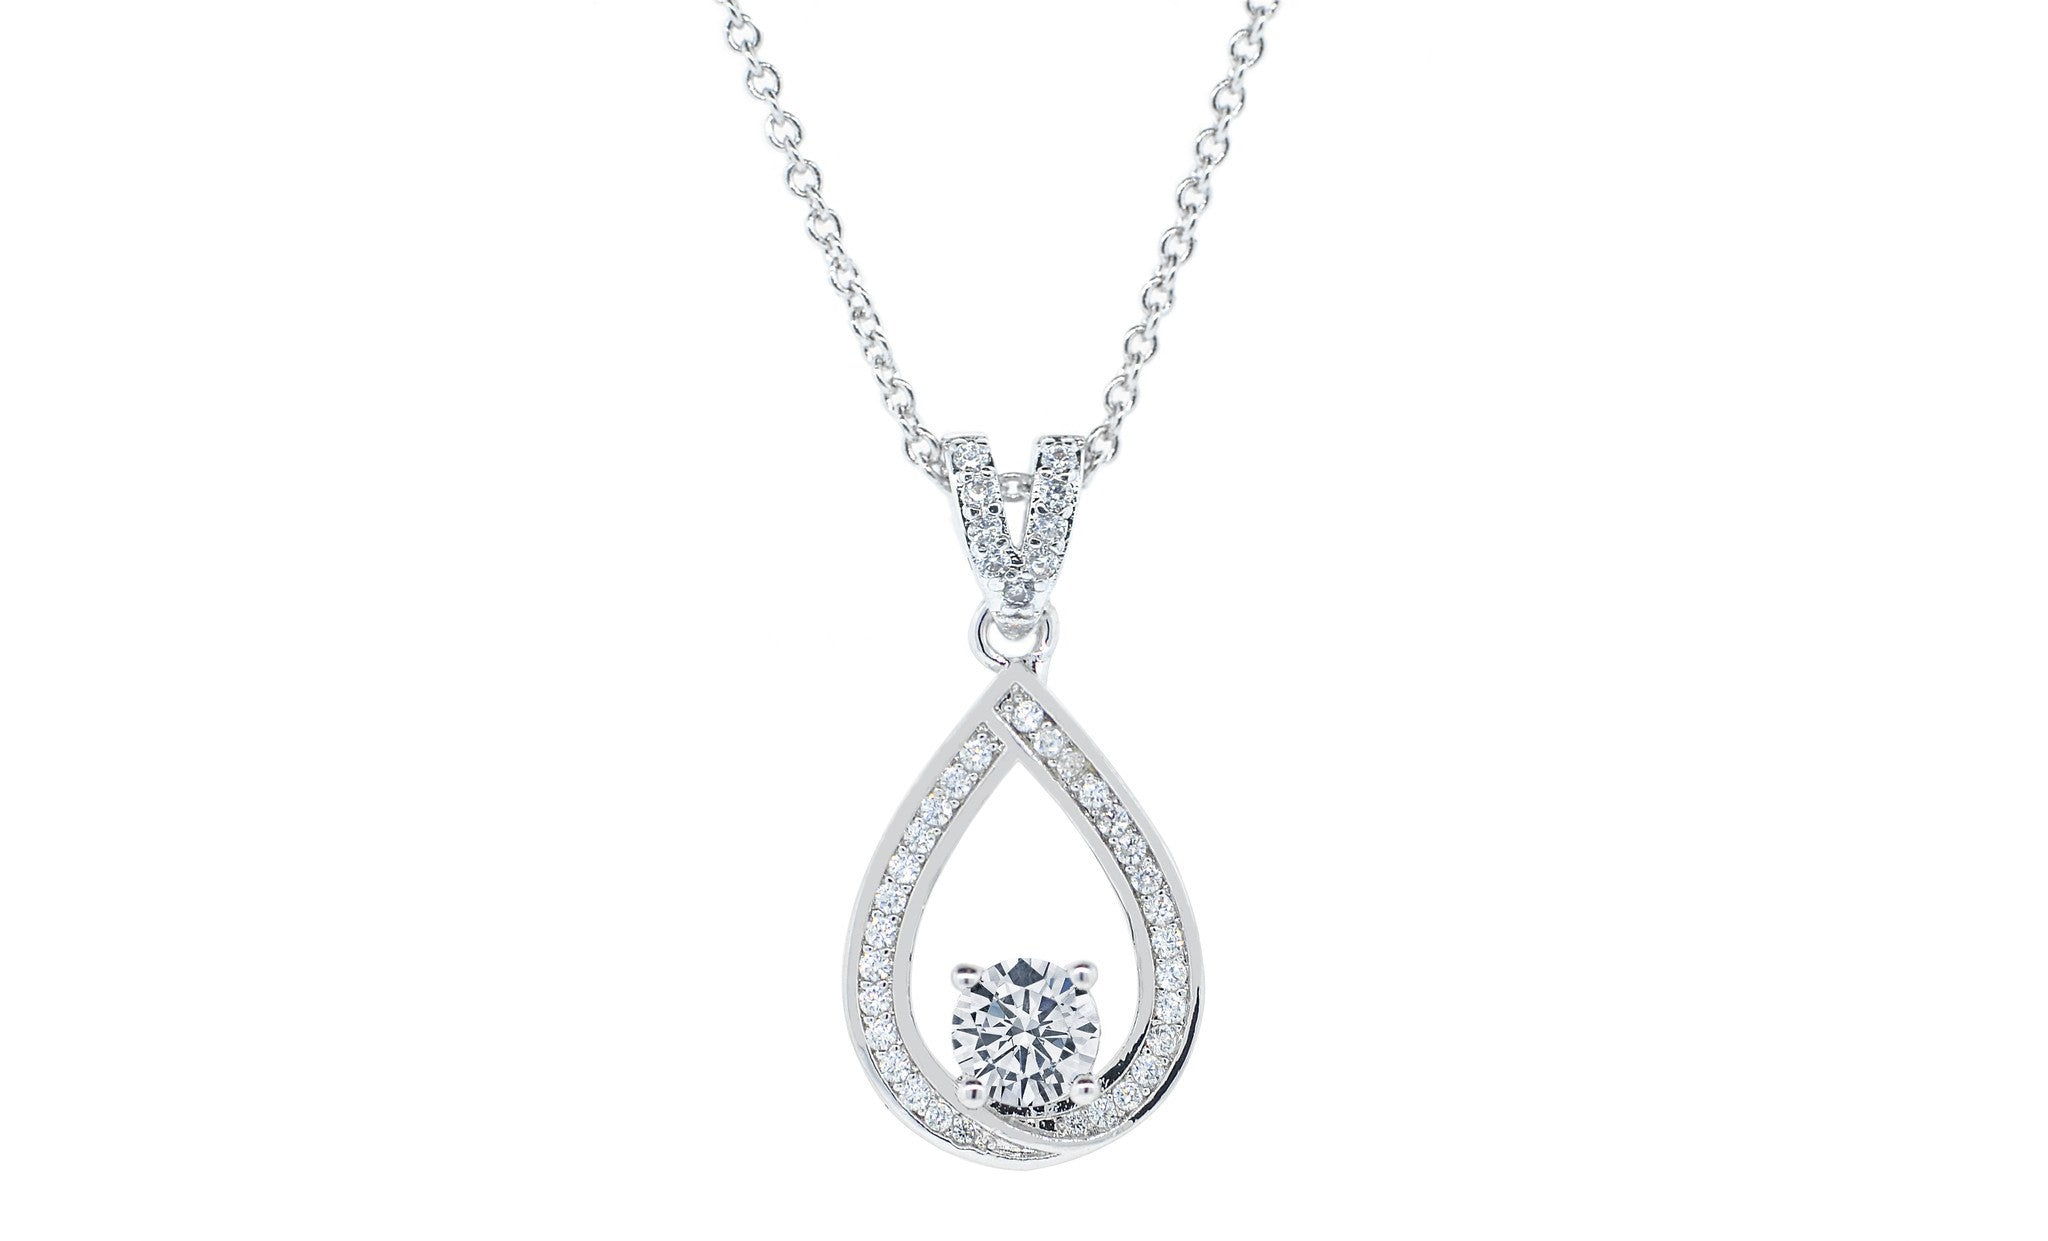 Arabella muse 18k white gold plated necklace cate chloe jewelry necklace pendant arabella muse 18k white gold plated necklace aloadofball